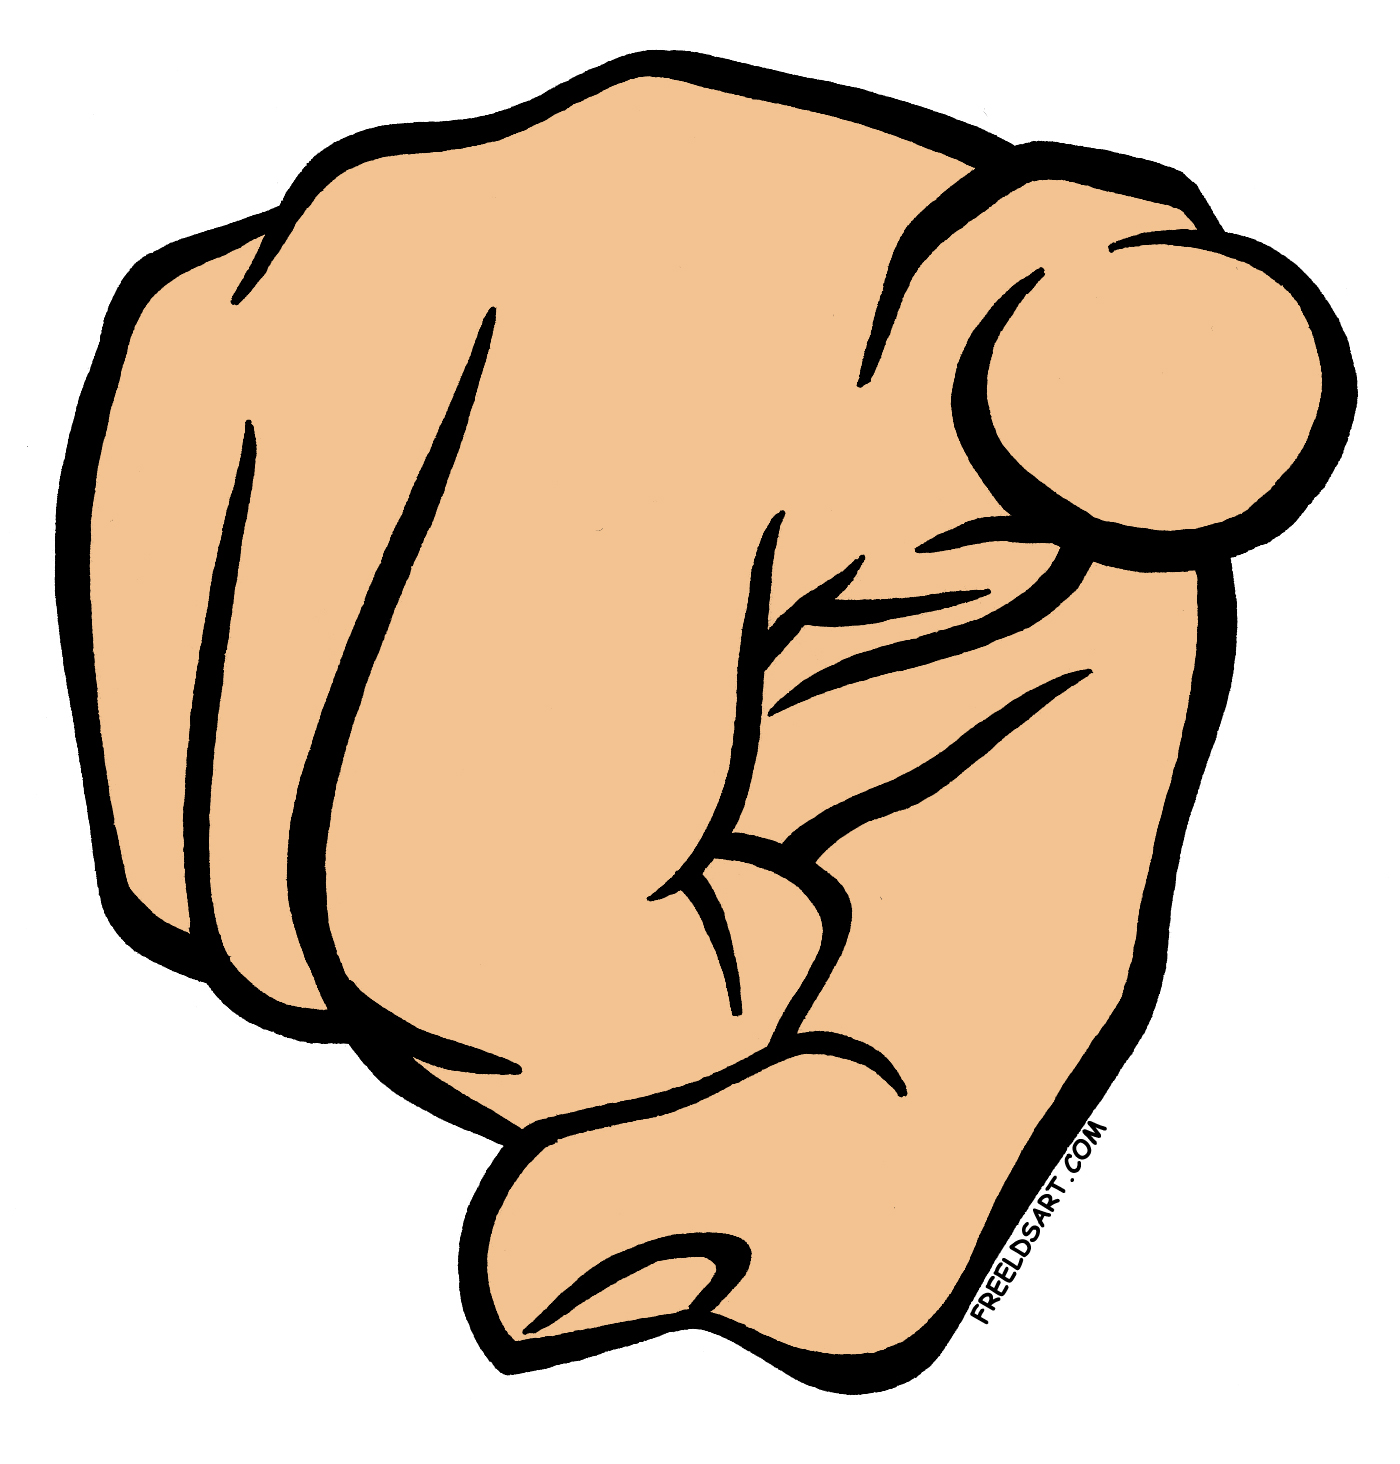 Finger pointing at you clipart clipart transparent stock Free Pointing Finger Cliparts, Download Free Clip Art, Free Clip Art ... clipart transparent stock